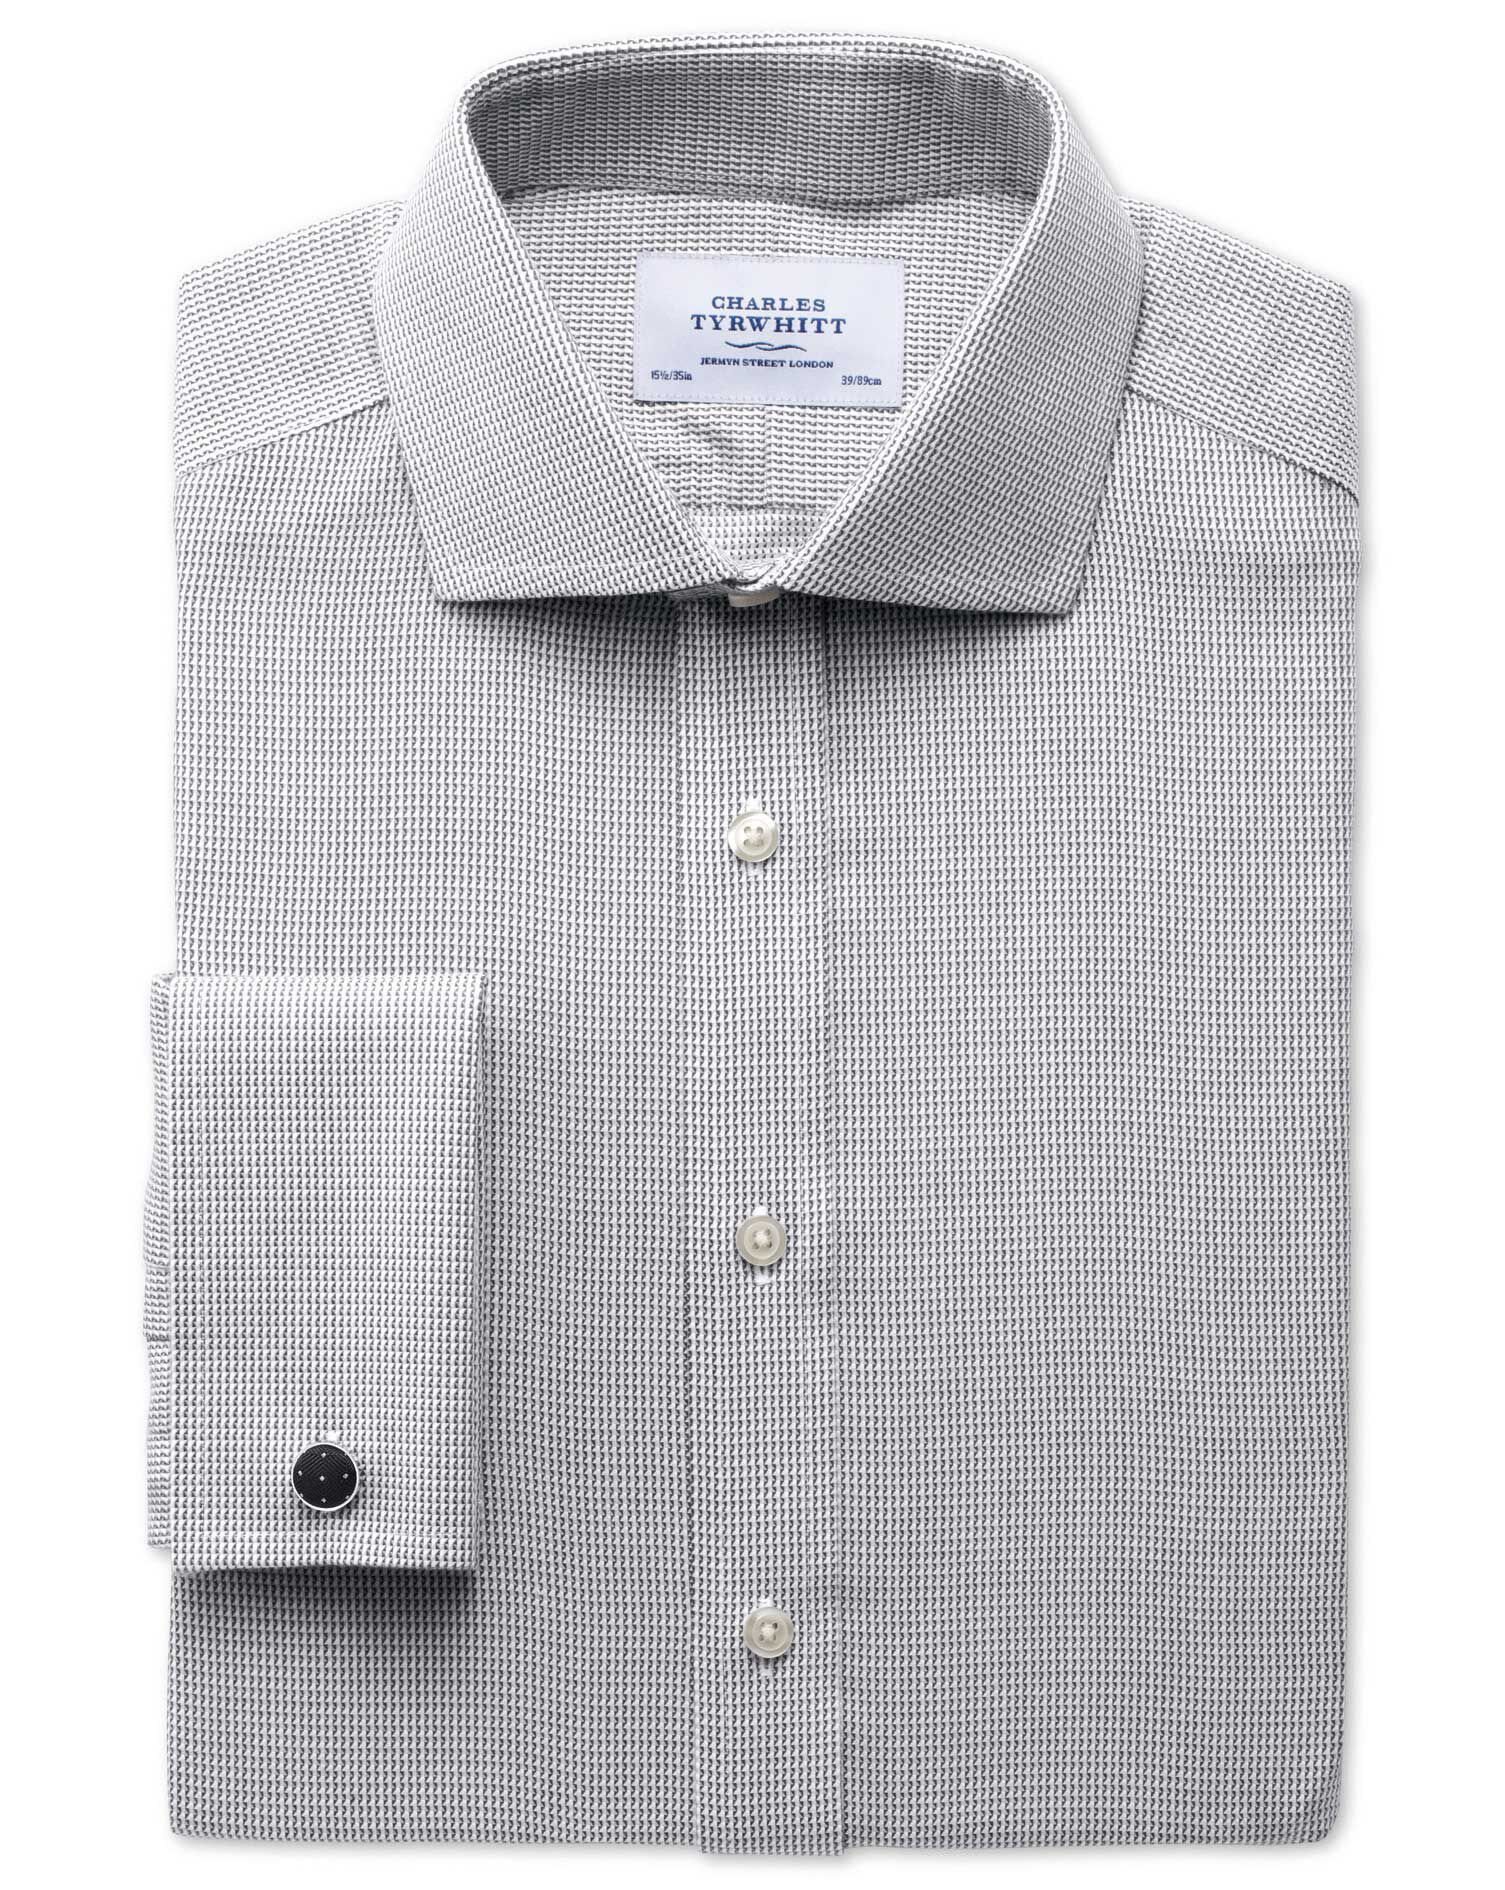 Slim Fit Cutaway Collar Non-Iron Grey Cotton Formal Shirt Double Cuff Size 16/38 by Charles Tyrwhitt